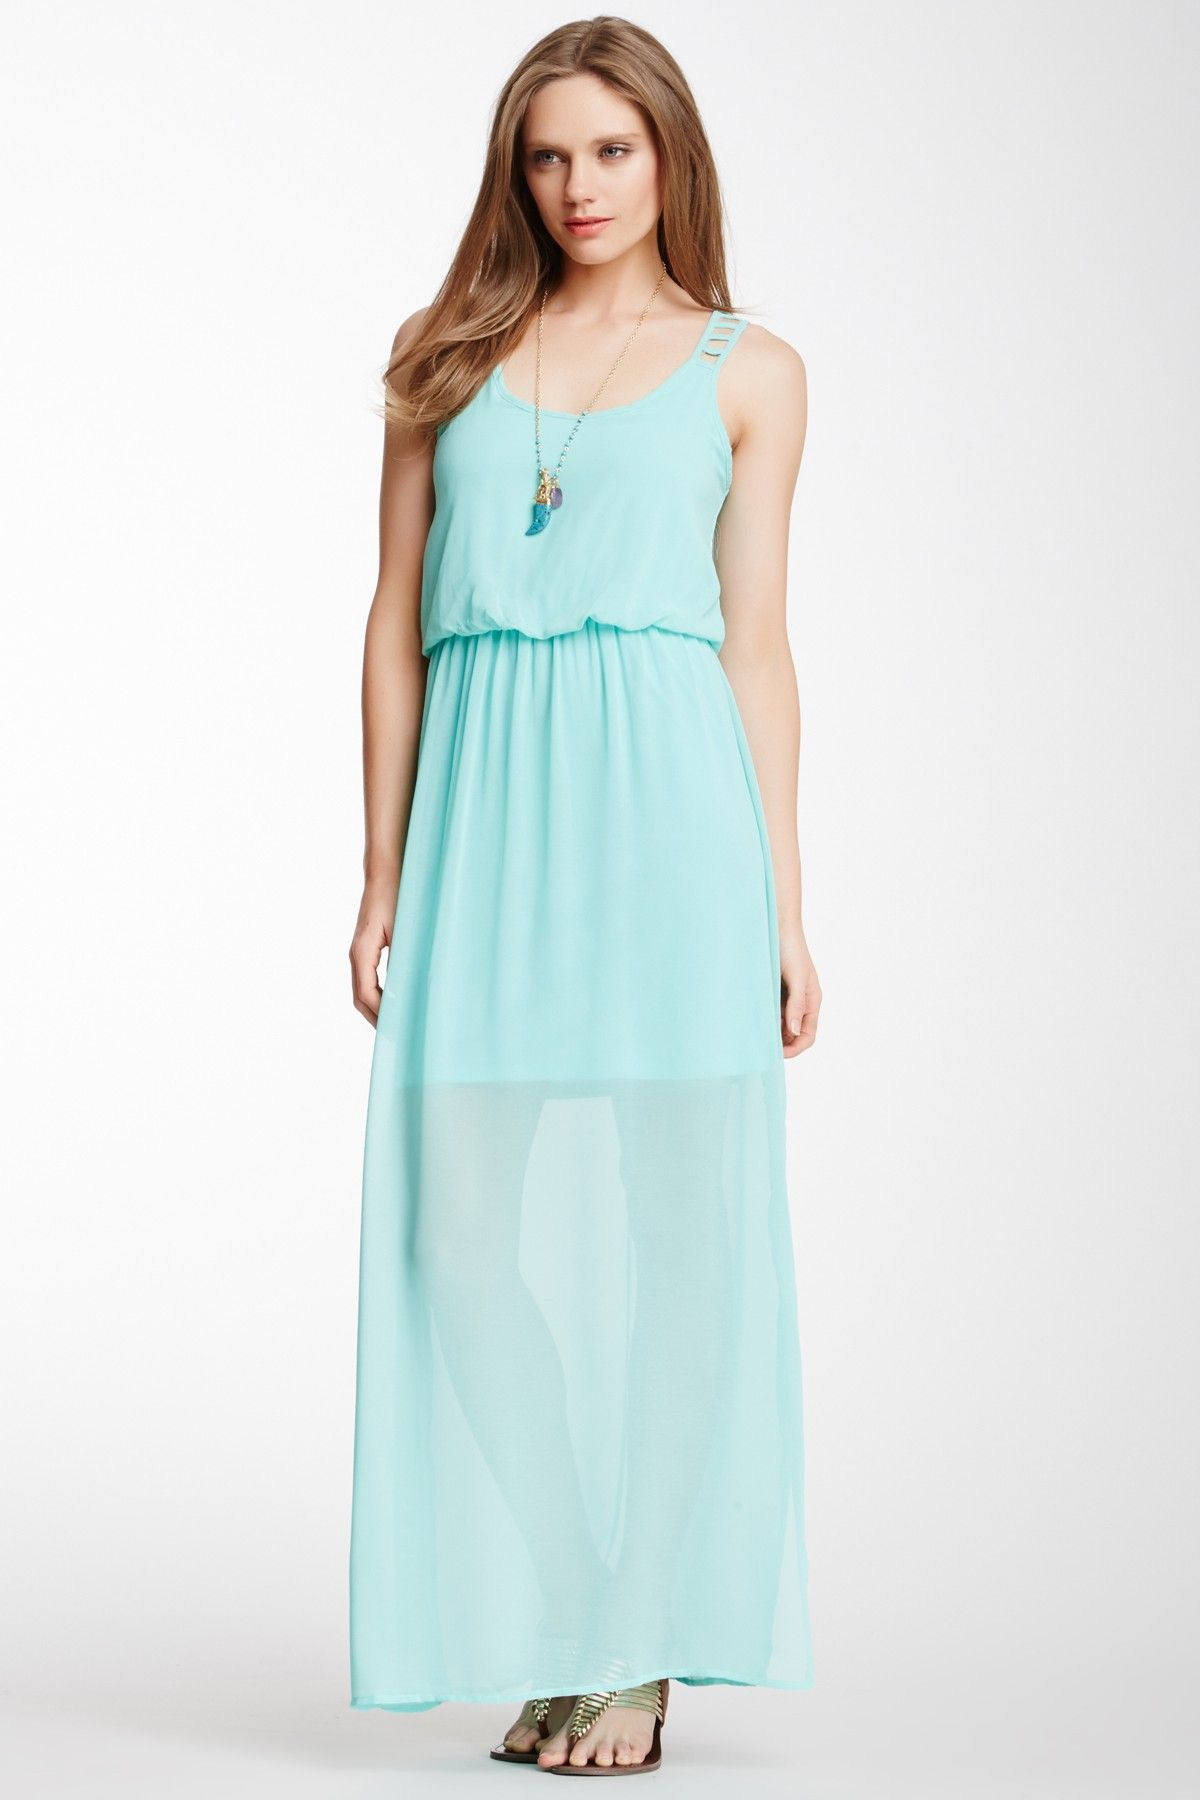 2bee06613 Socialite Socialite Lattice Back Solid Chiffon Maxi Dress | Nordstrom Rack